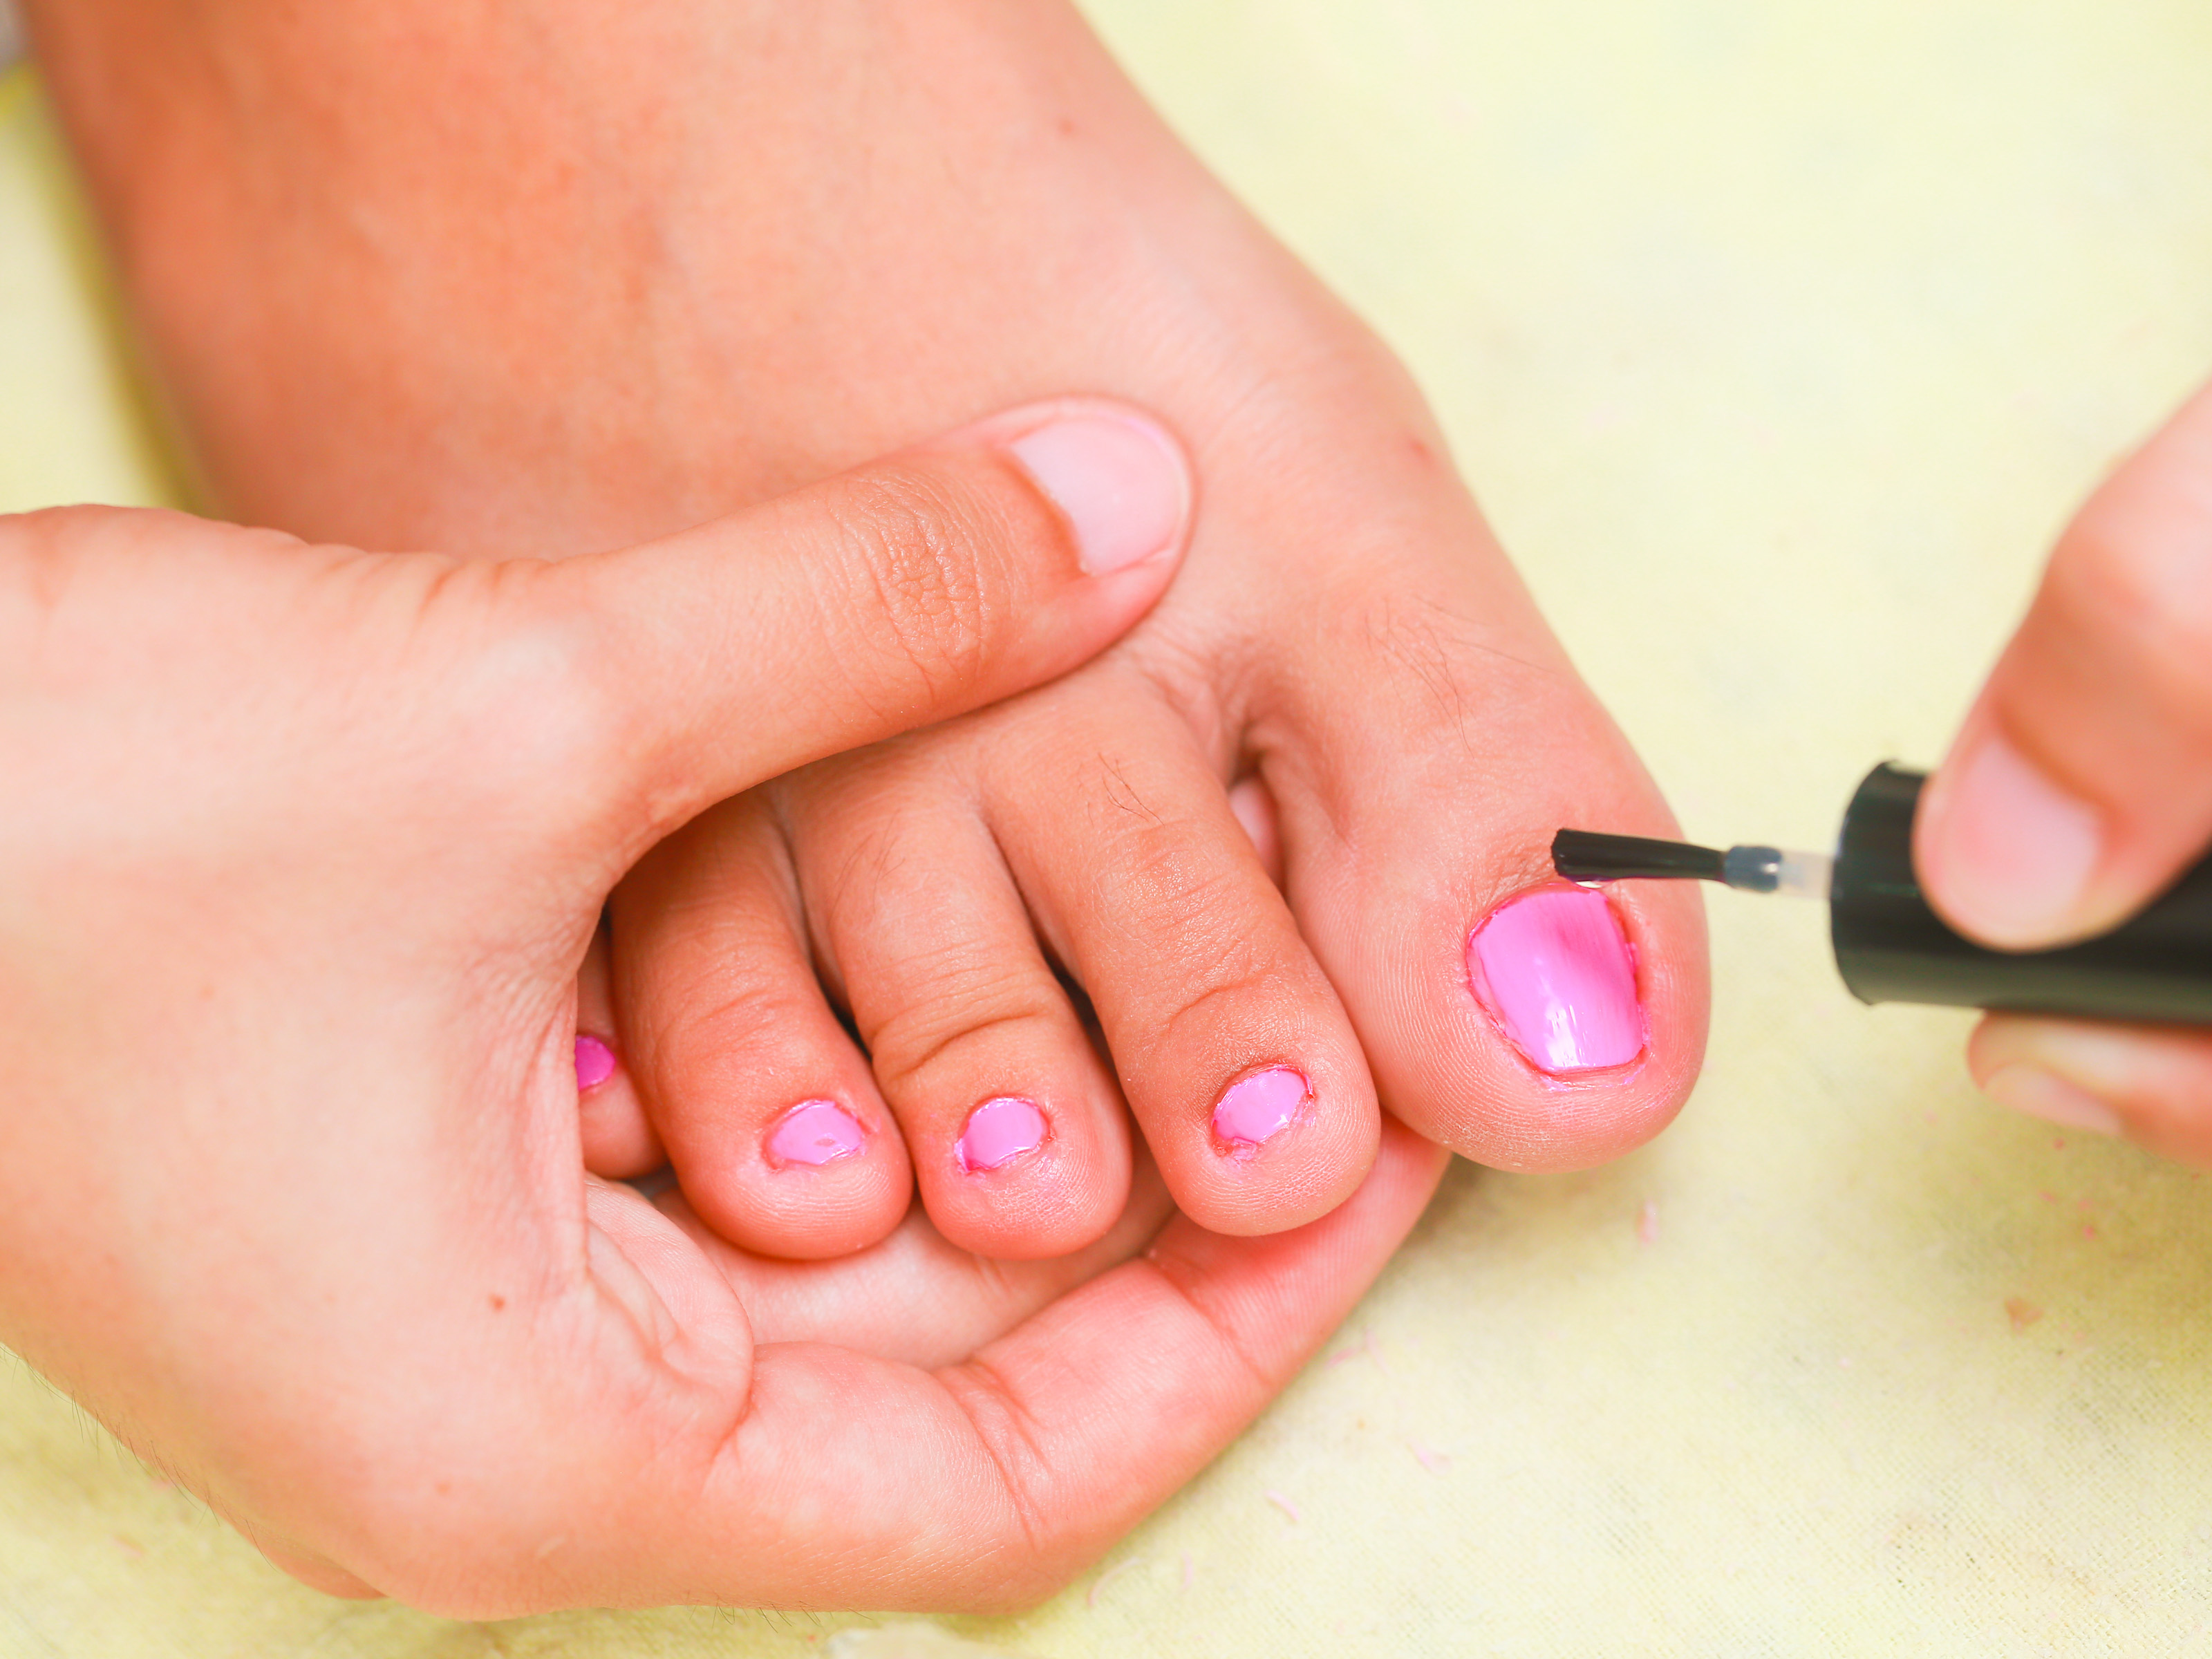 Pedicures Nail Industry Statistics In Us Nail Center Nails Magazine